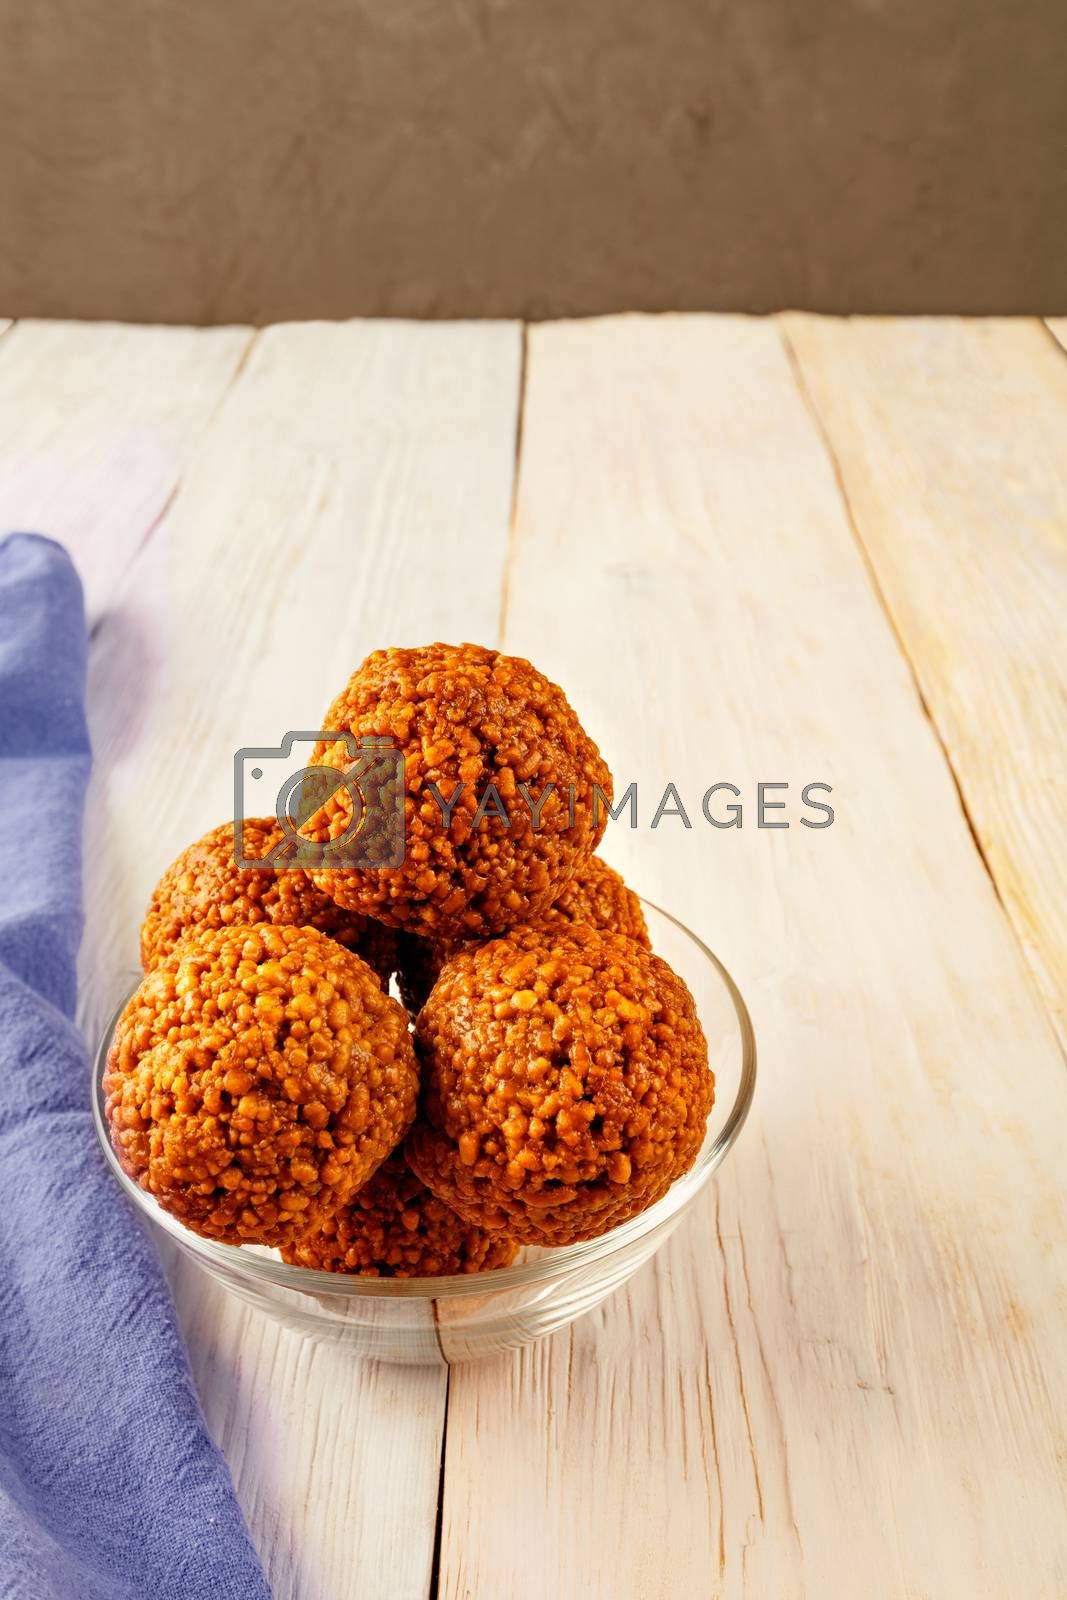 Homemade energy balls with walnuts and honey, light wooden surface and glassware. Rustic style. Vegan raw snacks. Healthy sweet food. Copy space, vertical image, close-up.